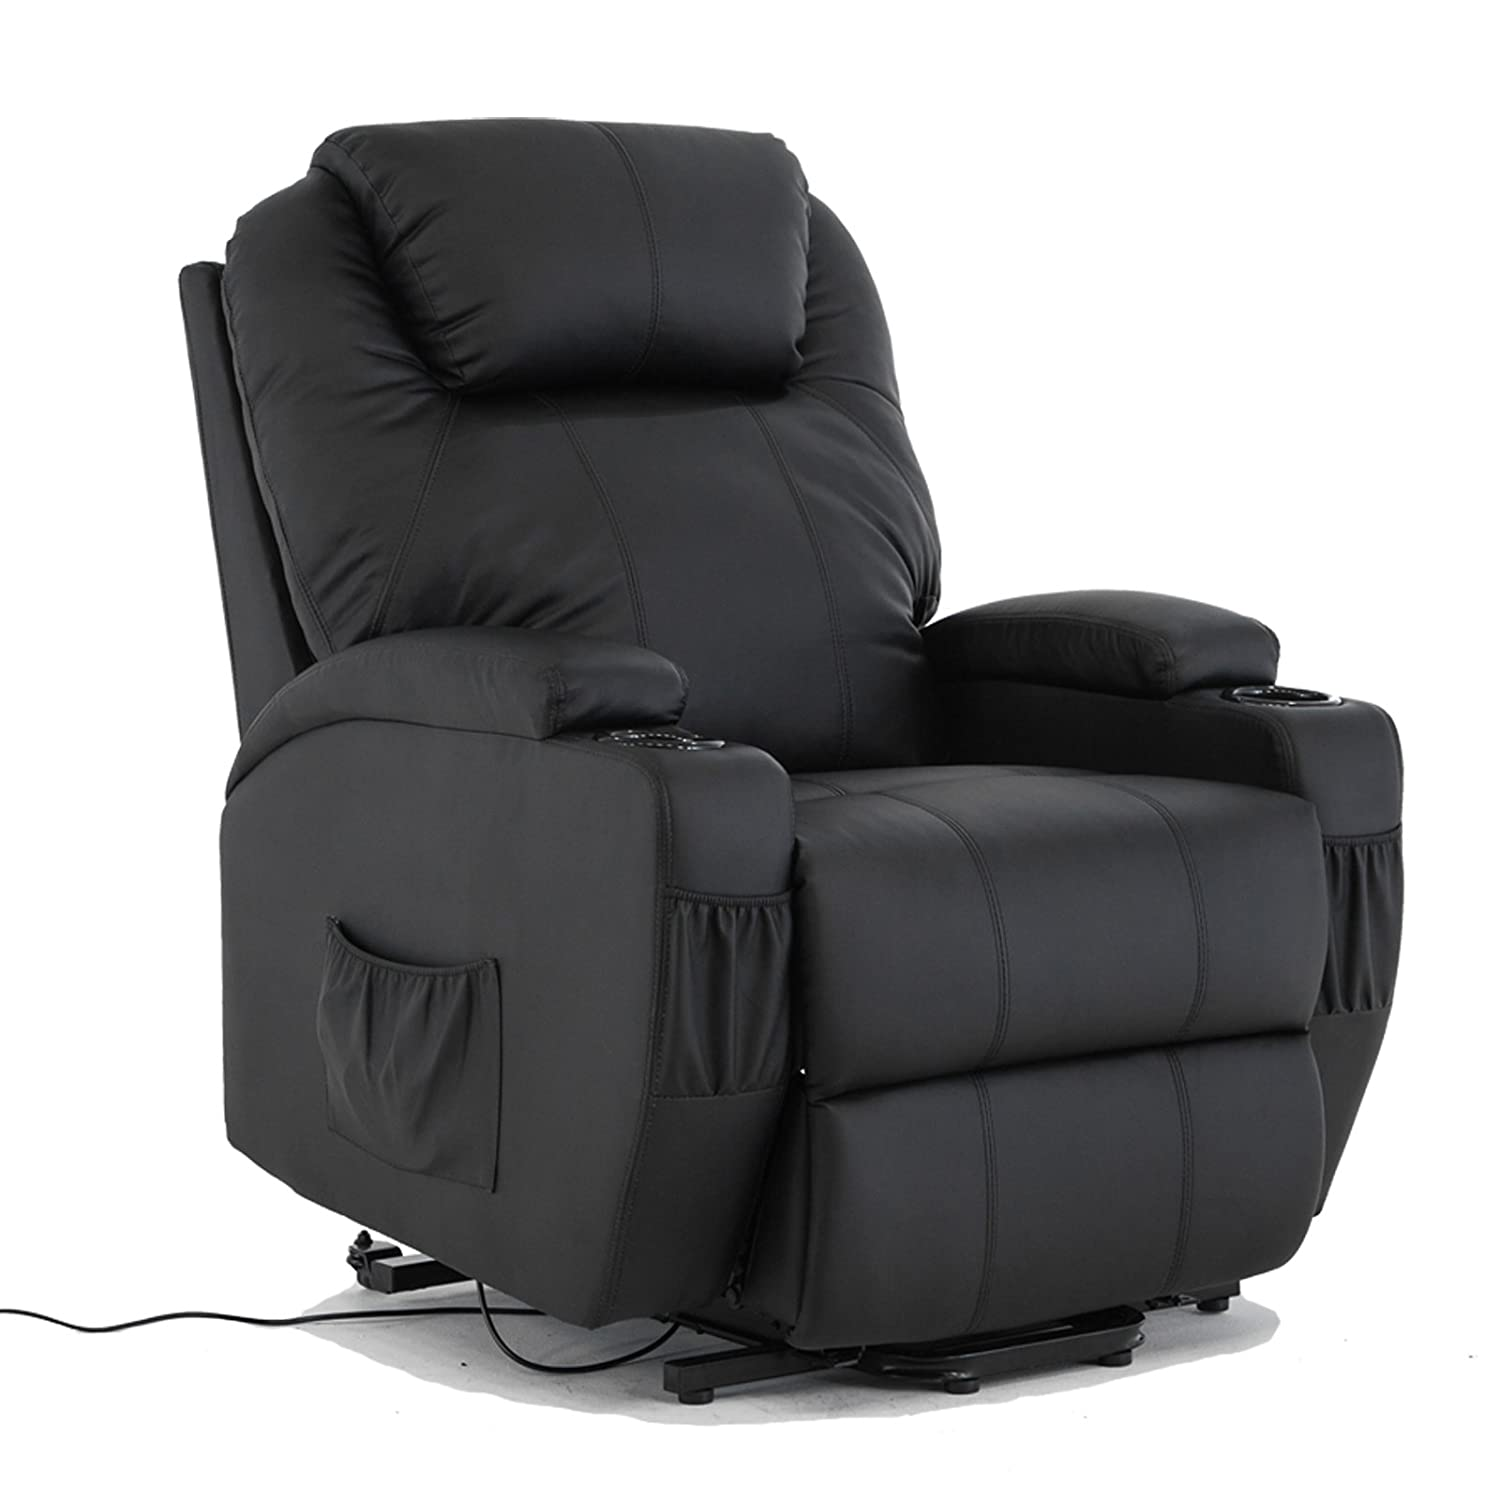 Amazon.com Power Lift Real Leather Recliner chair Wall Hugger Lounge Seat Black Kitchen \u0026 Dining  sc 1 st  Amazon.com & Amazon.com: Power Lift Real Leather Recliner chair Wall Hugger ... islam-shia.org